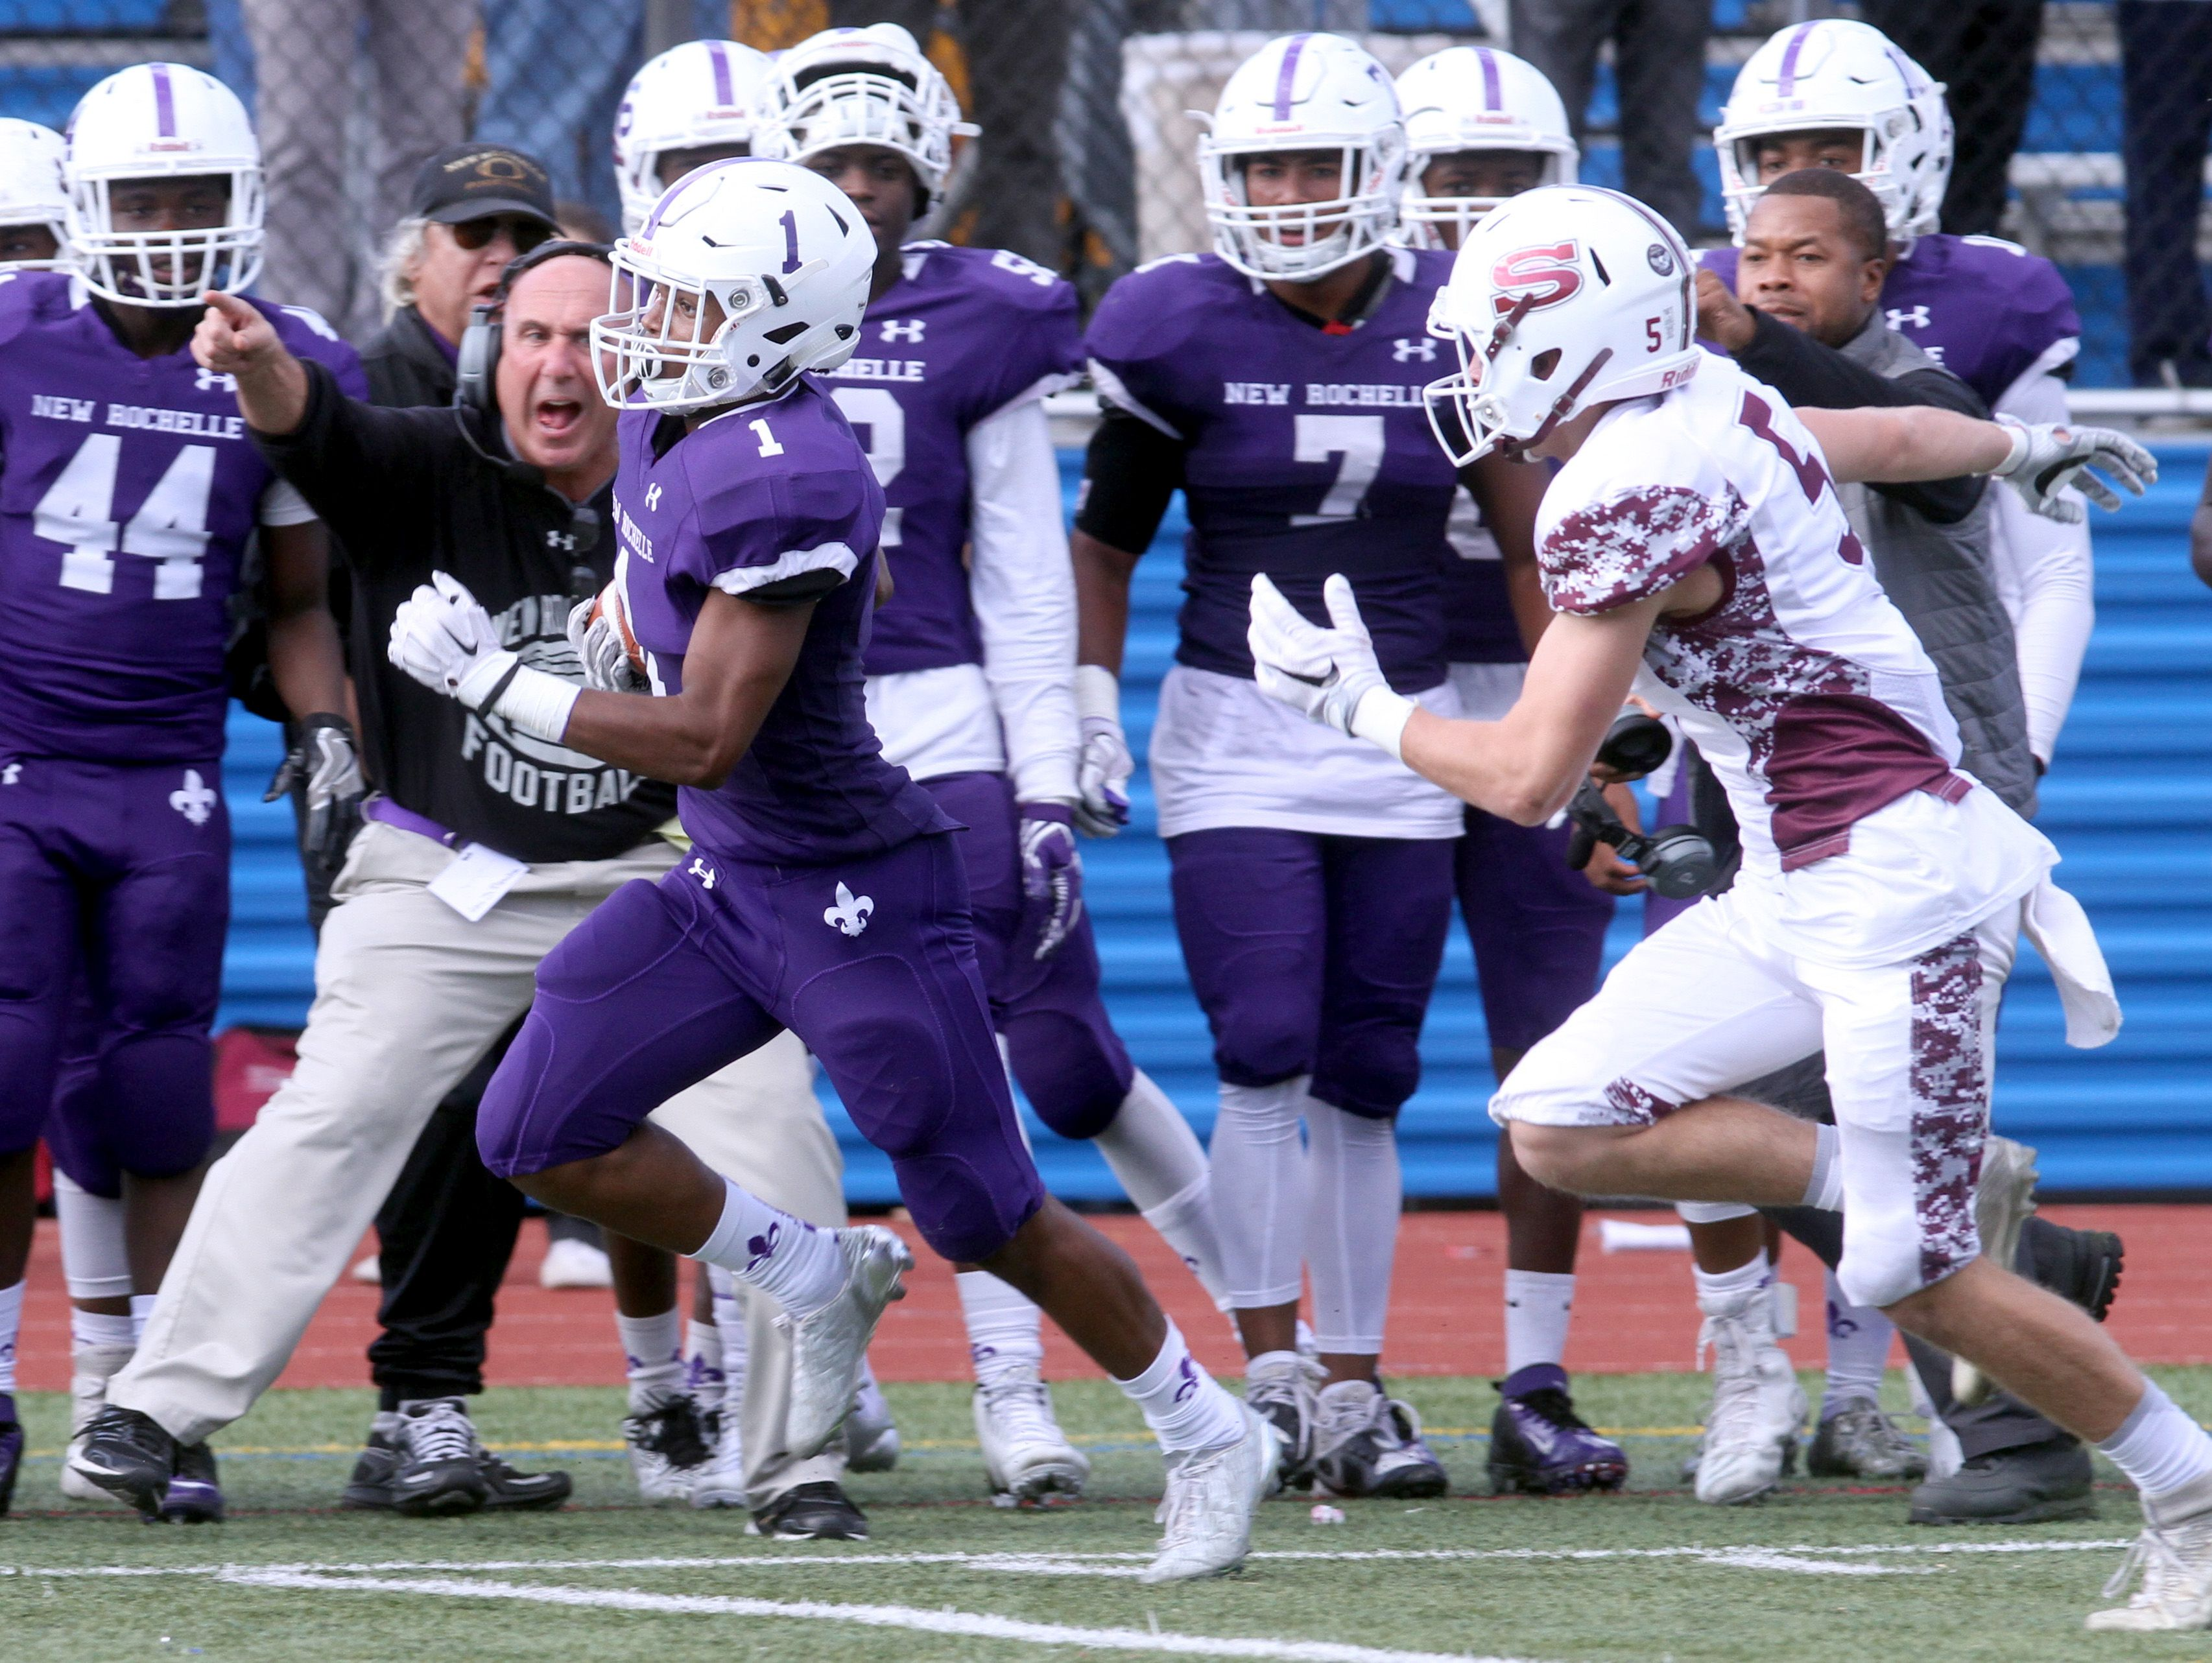 New Rochelle's Najee Bass rushes for a 79 yard touchdown during the Section 1 Class AA football championship against Scarsdale at Mahopac High School Nov. 6, 2016. New Rochelle defeated Scarsdale 41-13.